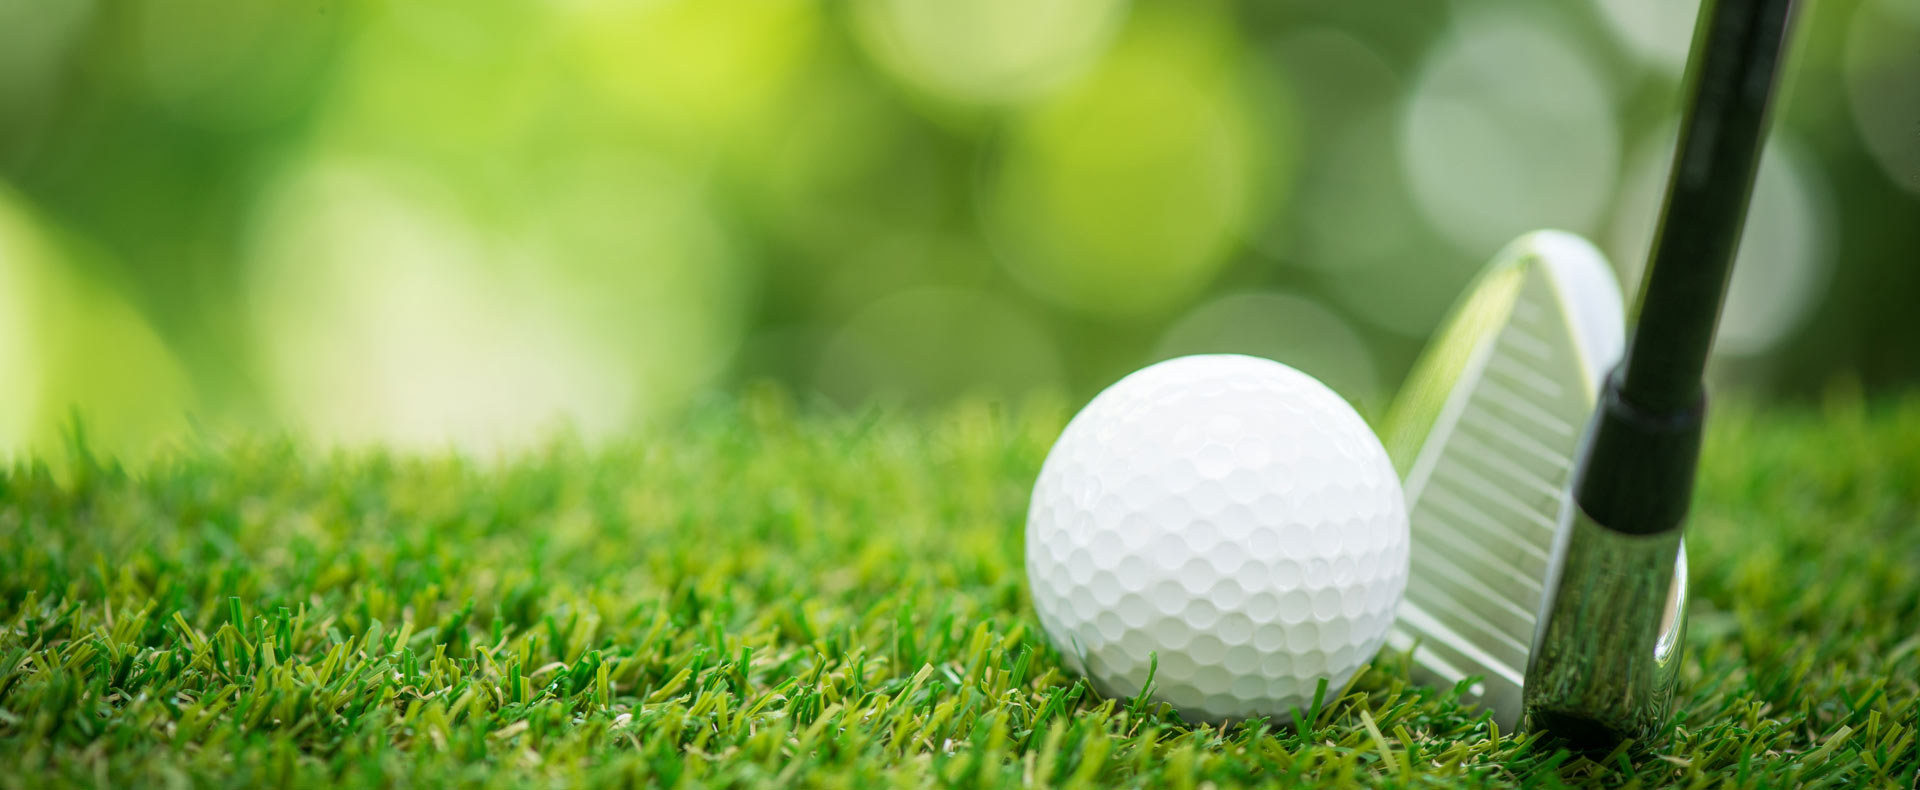 Lacking Knowledge About Golf? Learn About The Game Here!